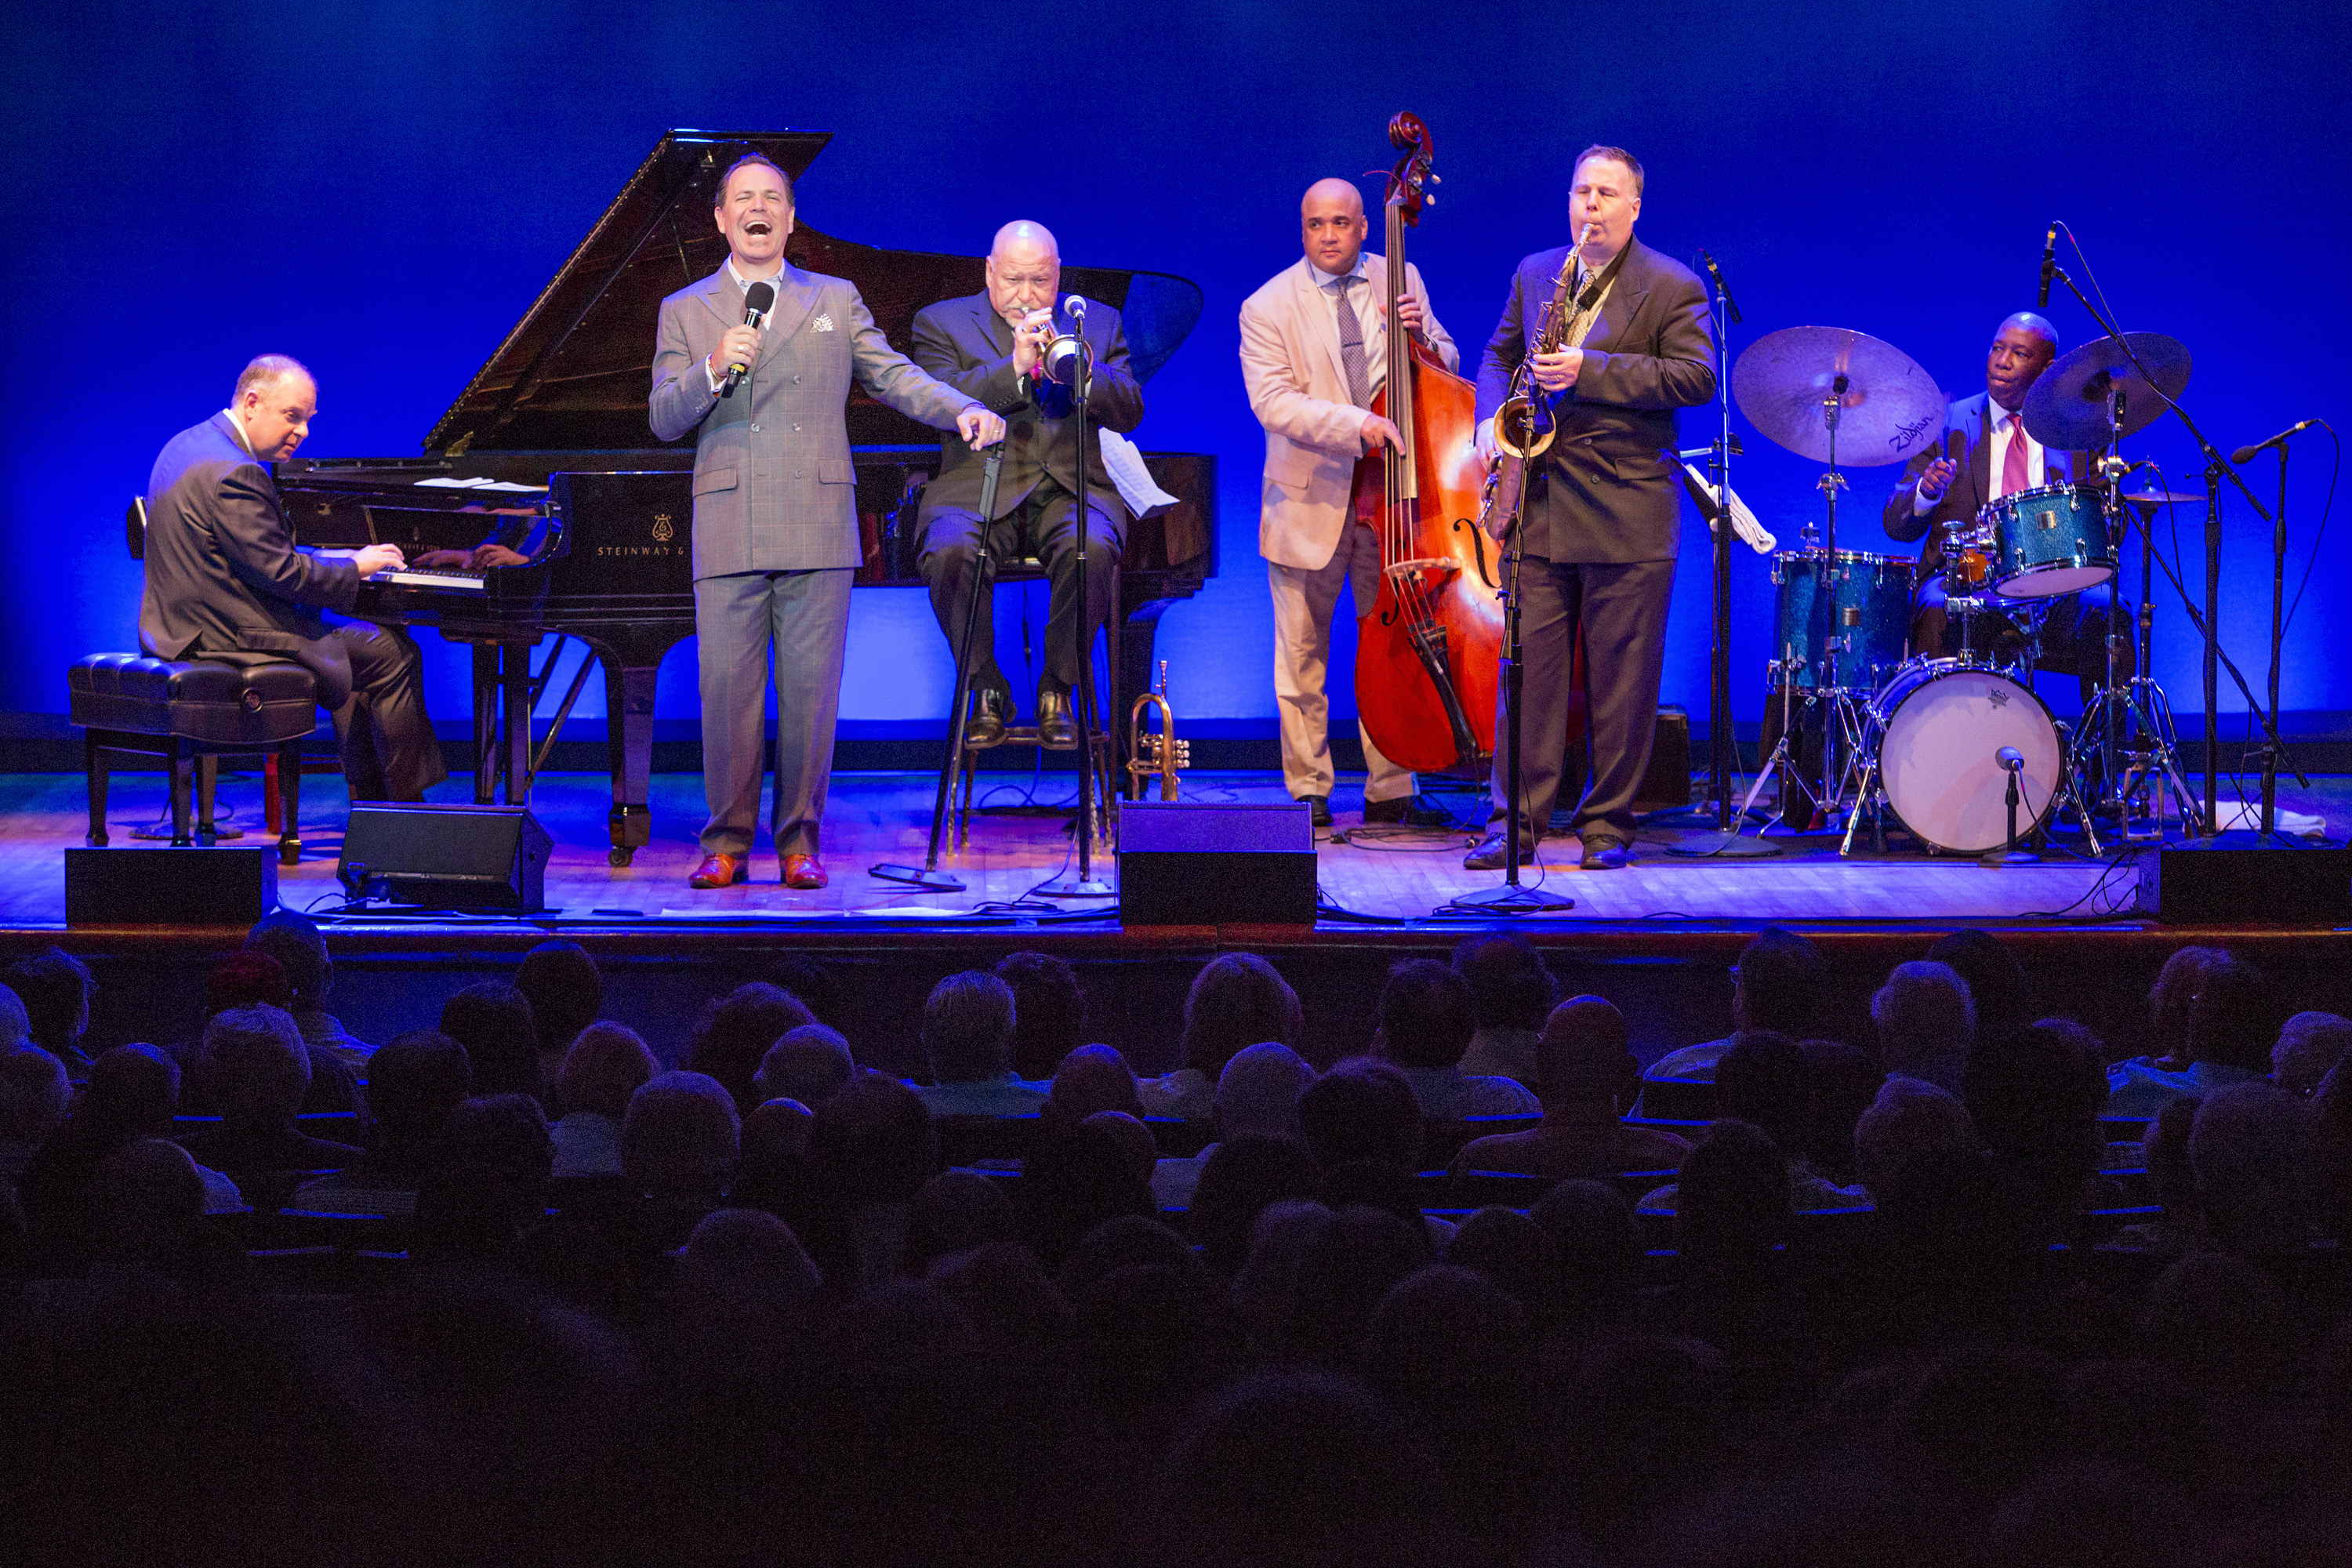 My Spotify Wrapped >> Swing A Song Of Sinatra at the 92Y Jazz in July Festival – Elmore Magazine